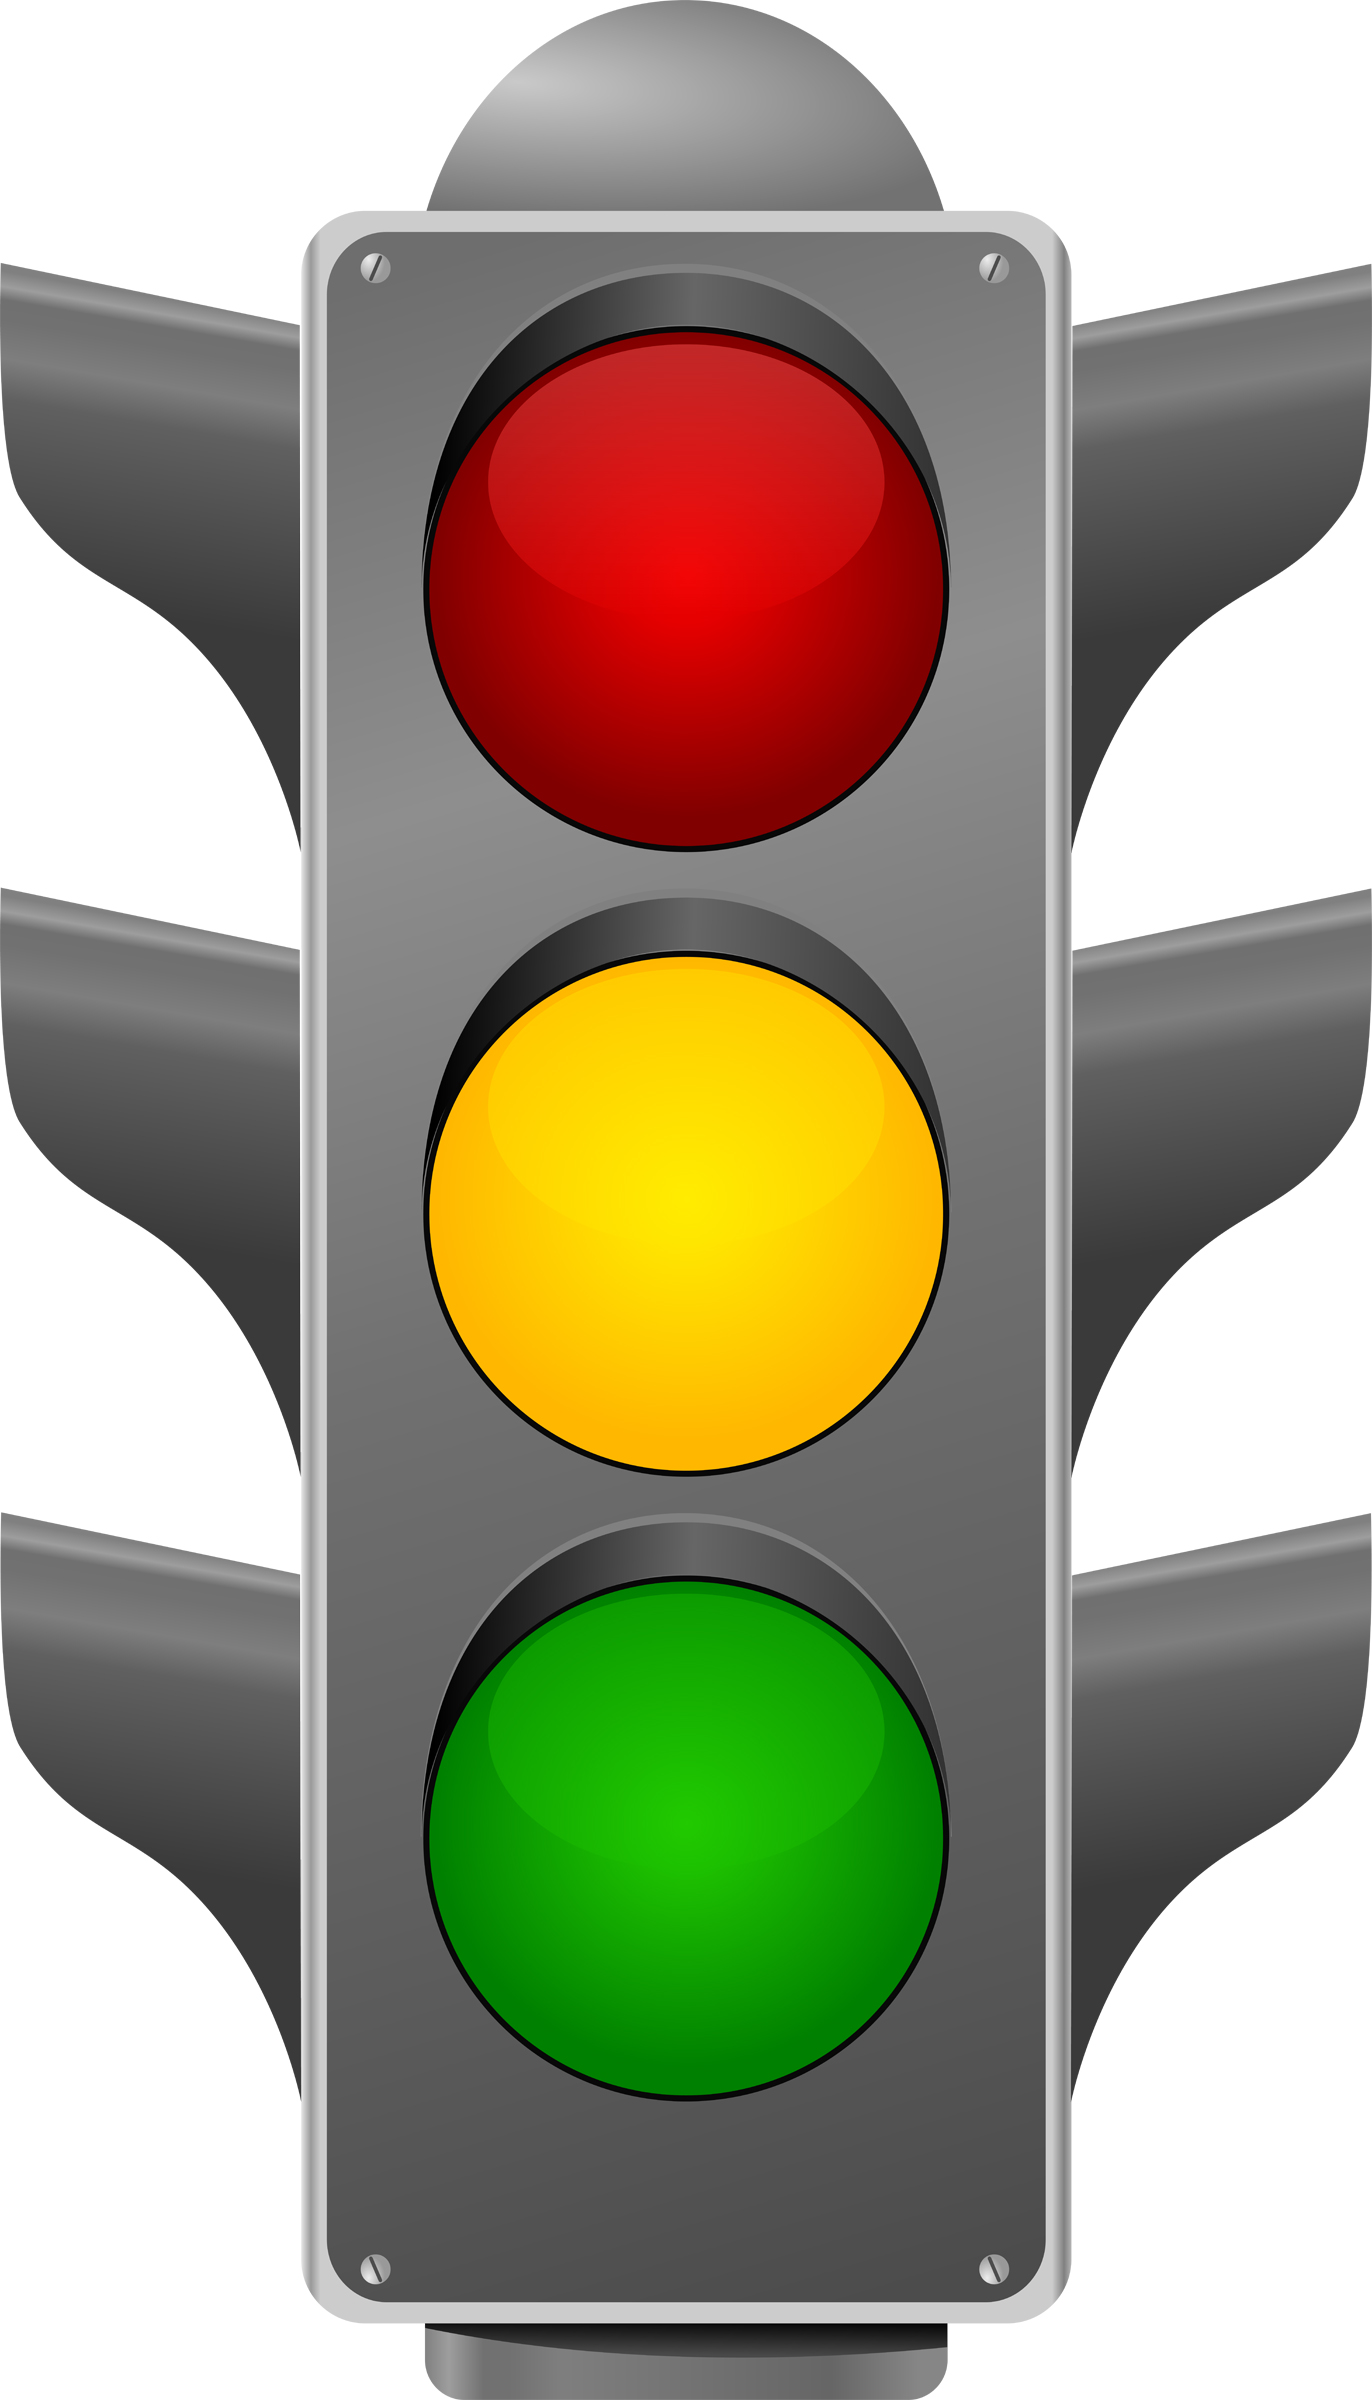 Traffic clipart traffic light Lights ClipartBarn light traffic sign